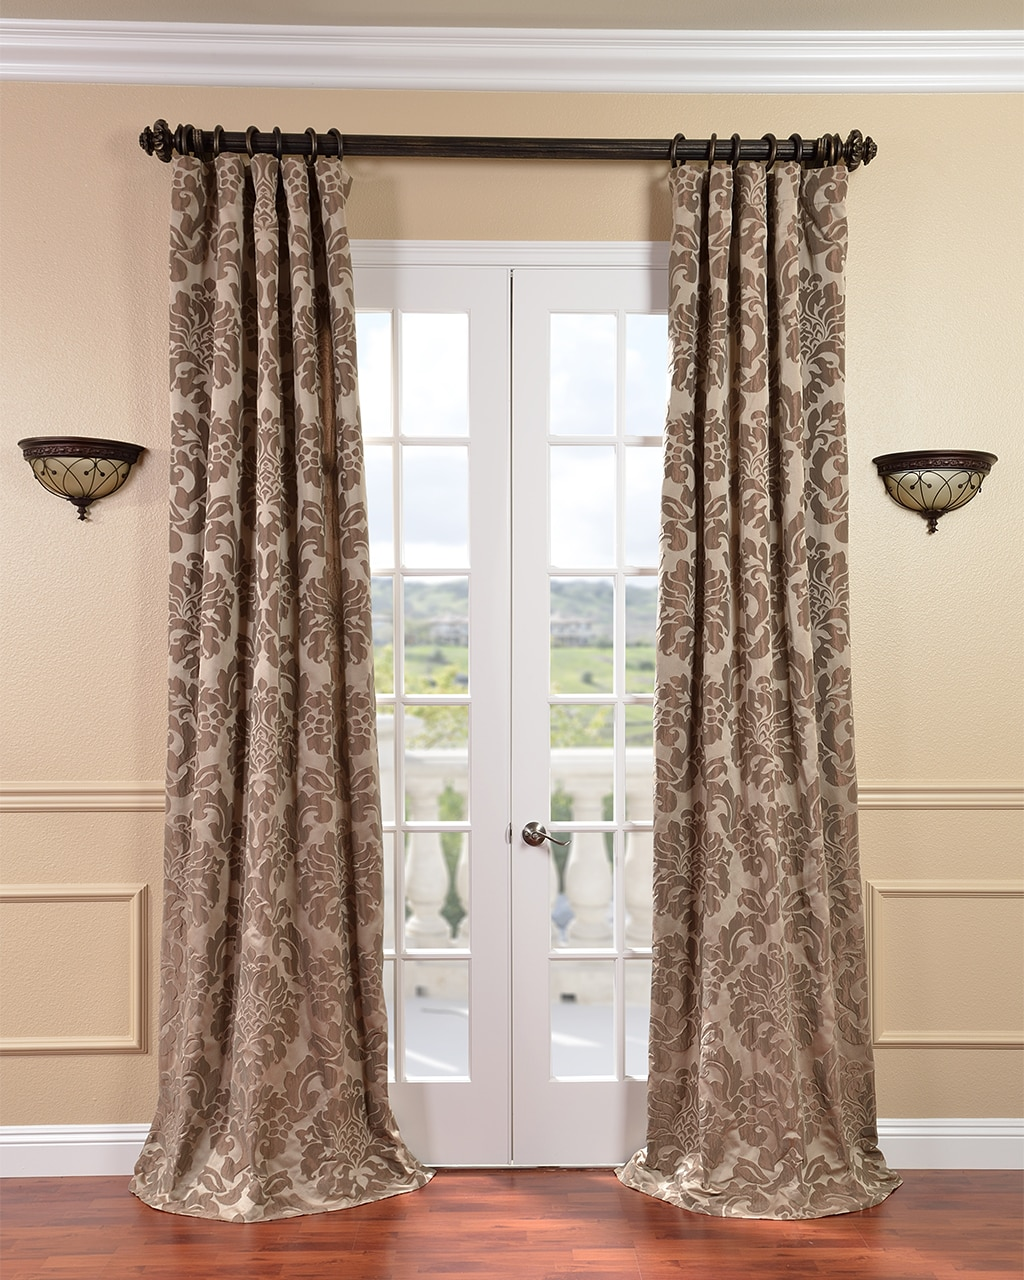 EFF Astoria Taupe/ Mushroom Faux Silk Jacquard Curtains